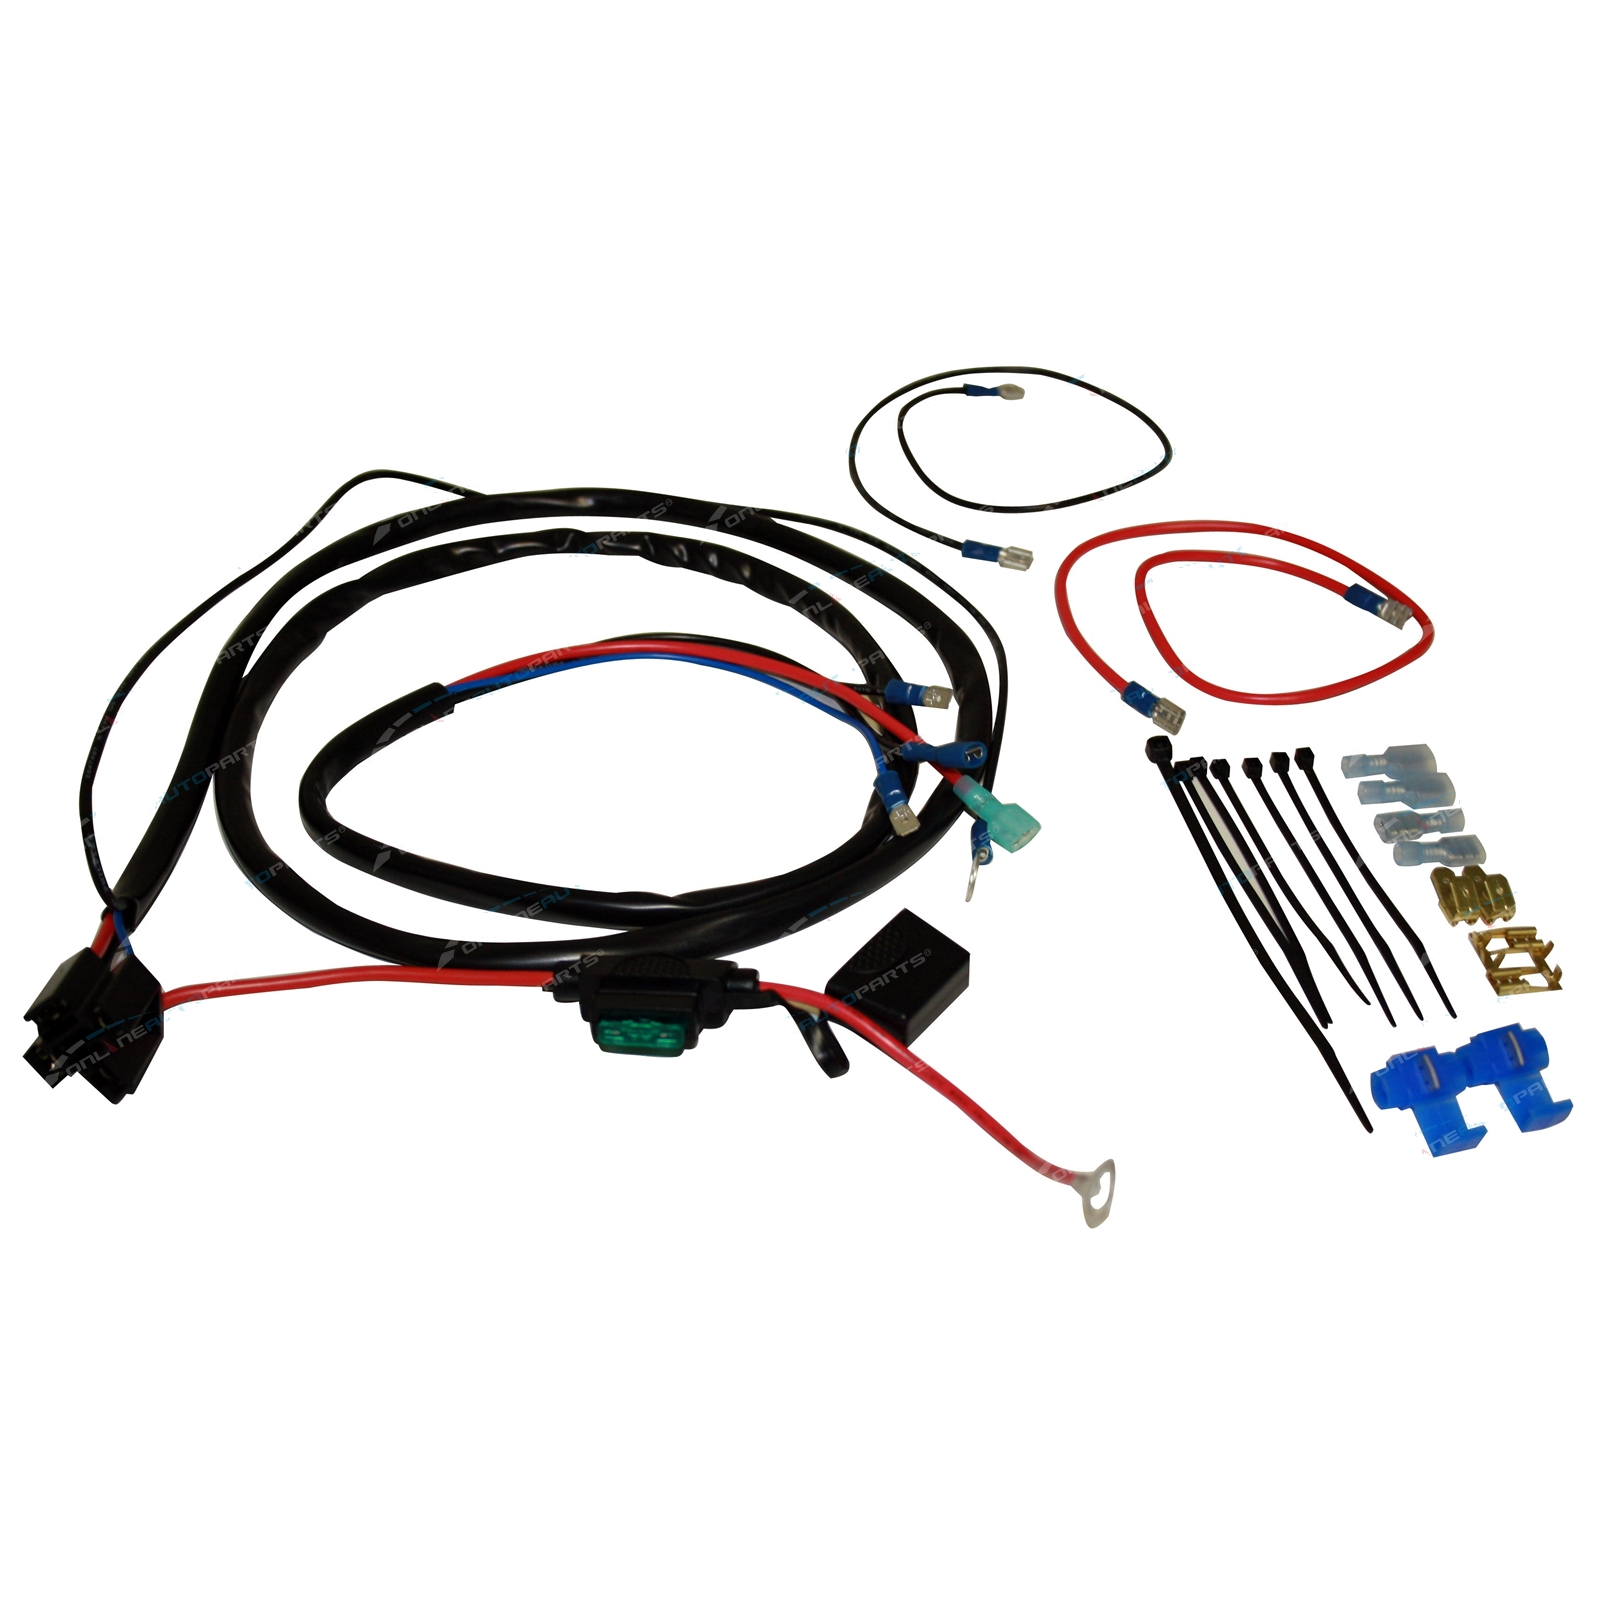 74f3473a1e804ea3ac2e9e76f3681b40 136db high power stebel magnum twin electric horn wiring harnes harness master wiring systems pty ltd at webbmarketing.co